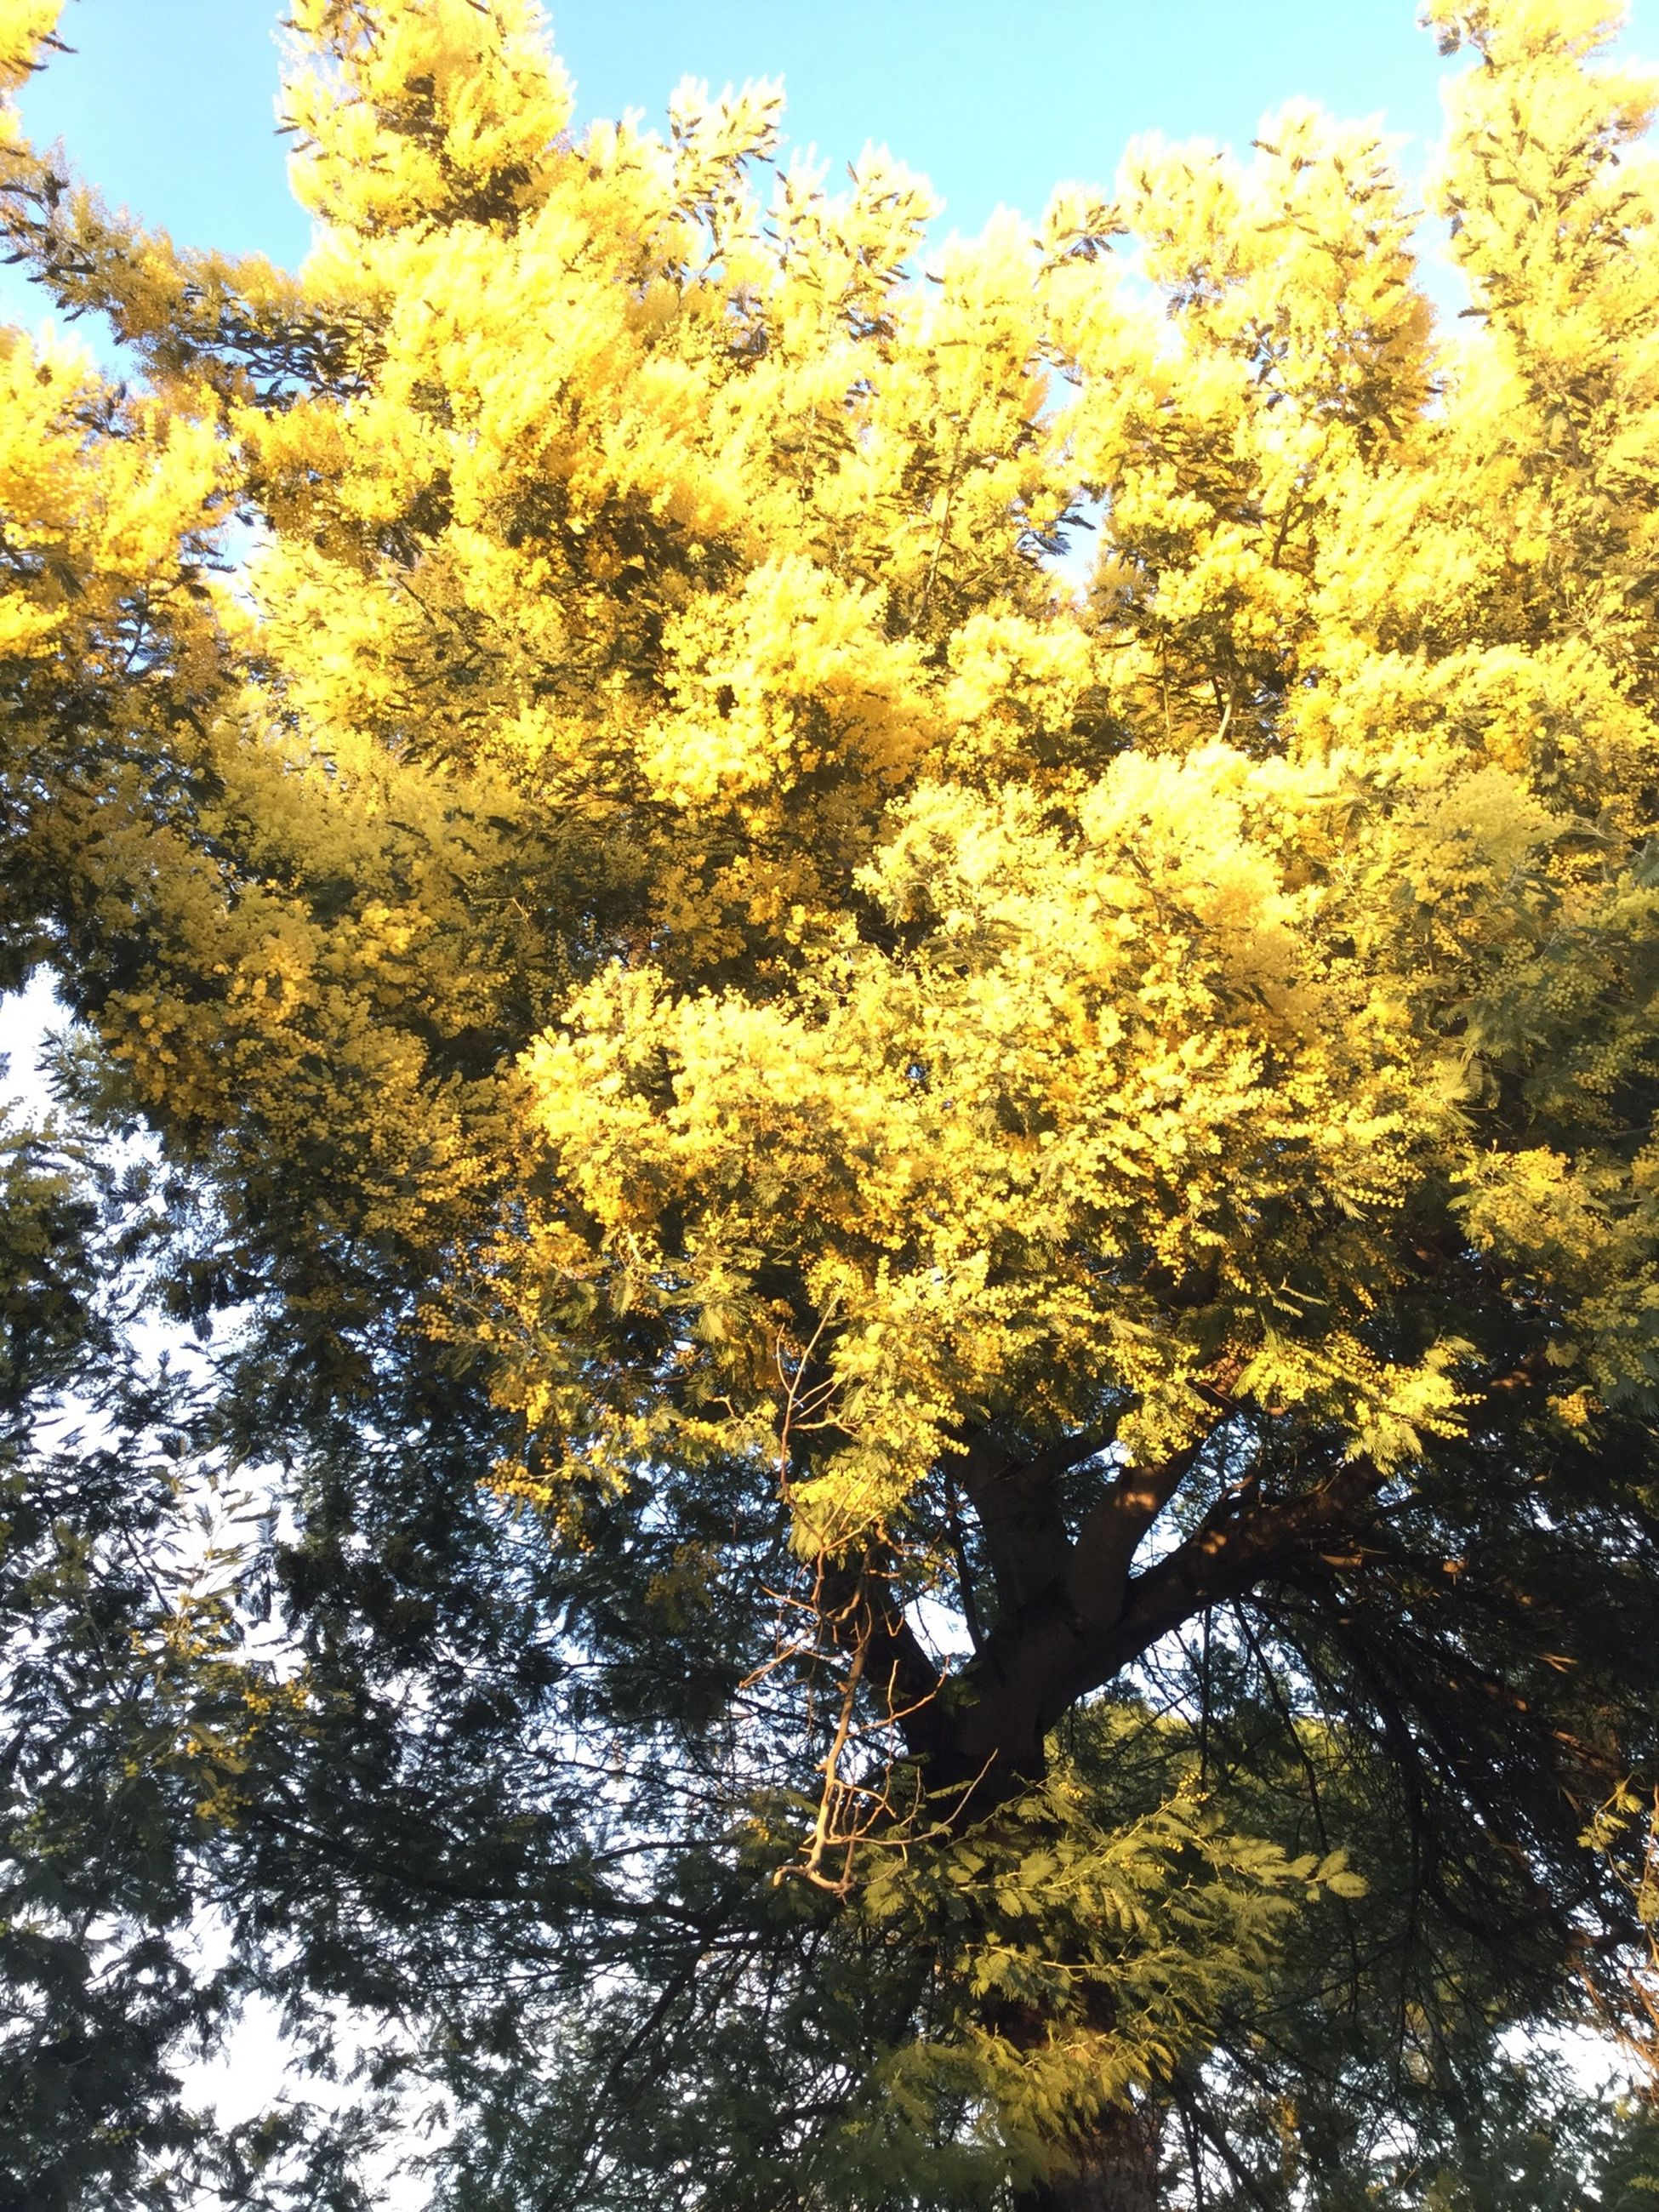 tree, low angle view, growth, yellow, nature, beauty in nature, branch, clear sky, tranquility, sky, sunlight, day, green color, freshness, outdoors, no people, scenics, season, tranquil scene, leaf